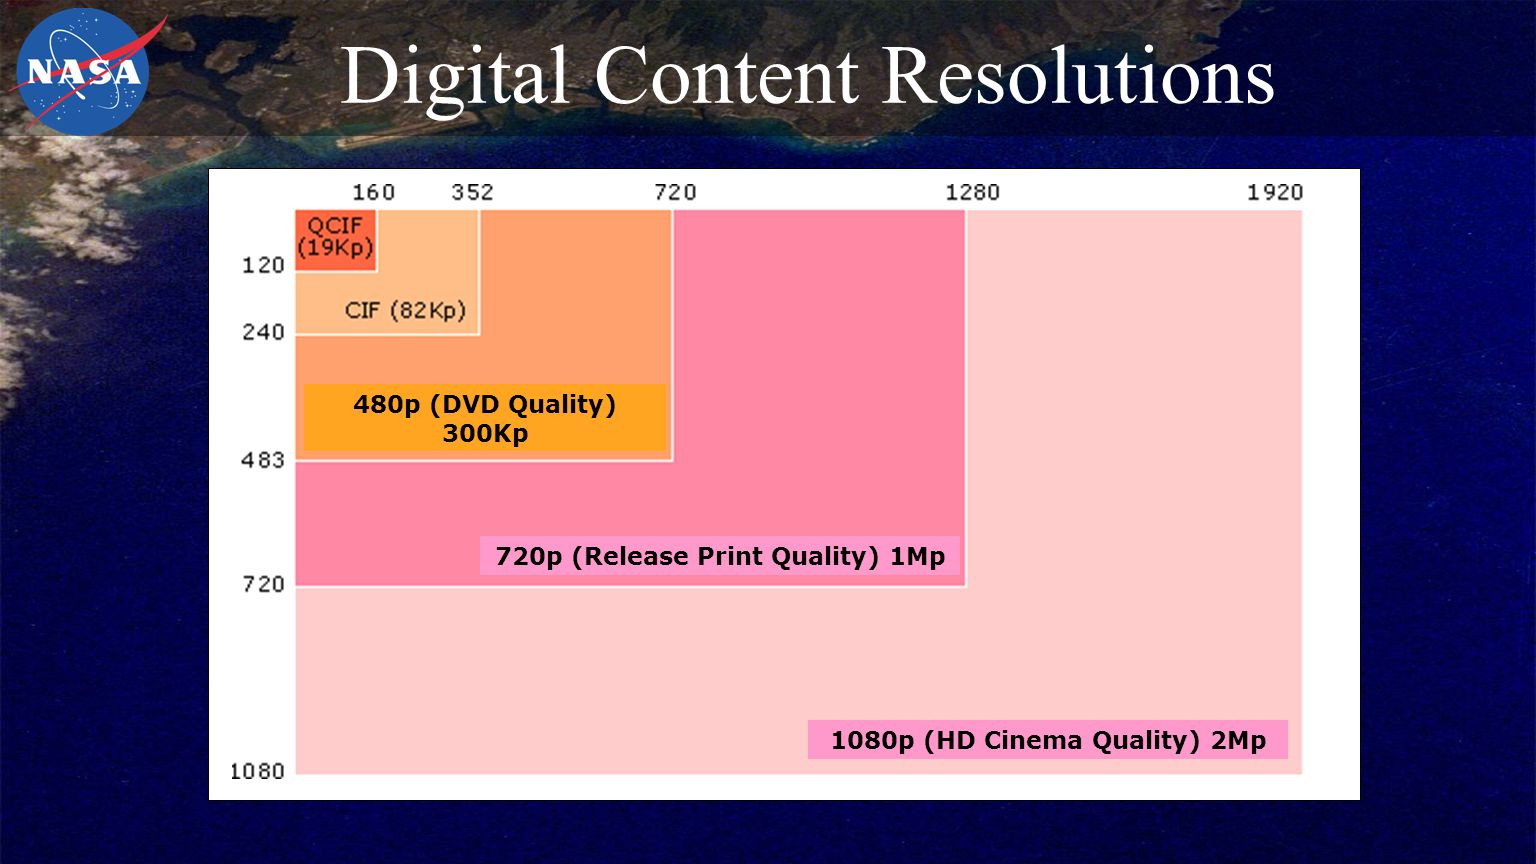 Digital Content Resolutions 480p (DVD Quality) 300Kp 720p (Release Print Quality) 1Mp 1080p (HD Cinema Quality) 2Mp